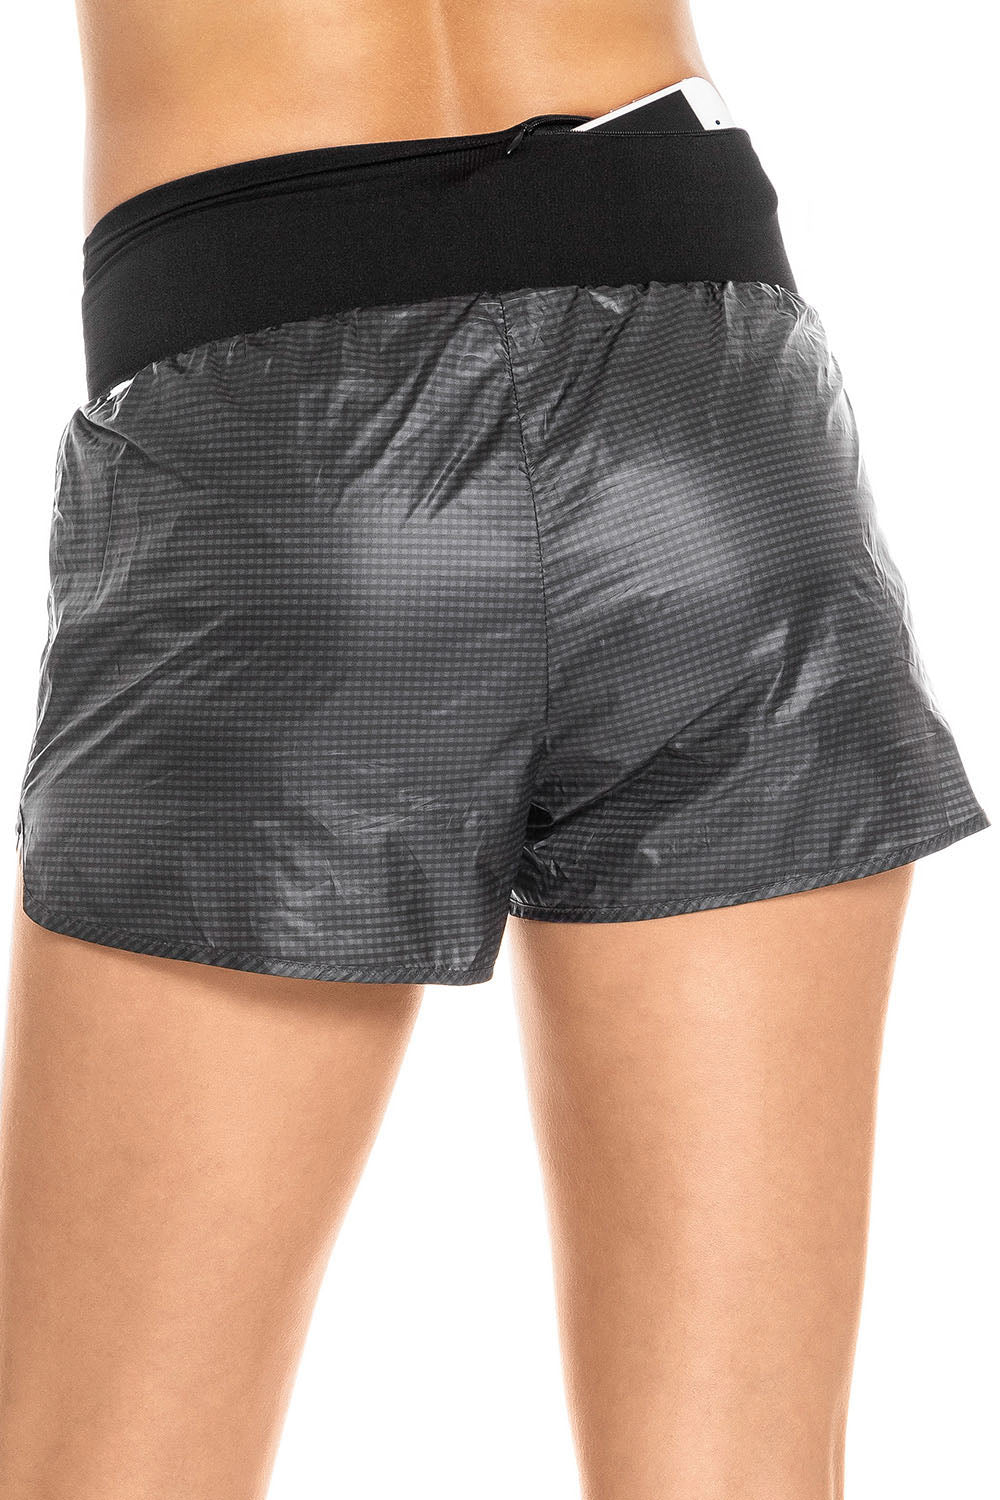 Speedy Shorts